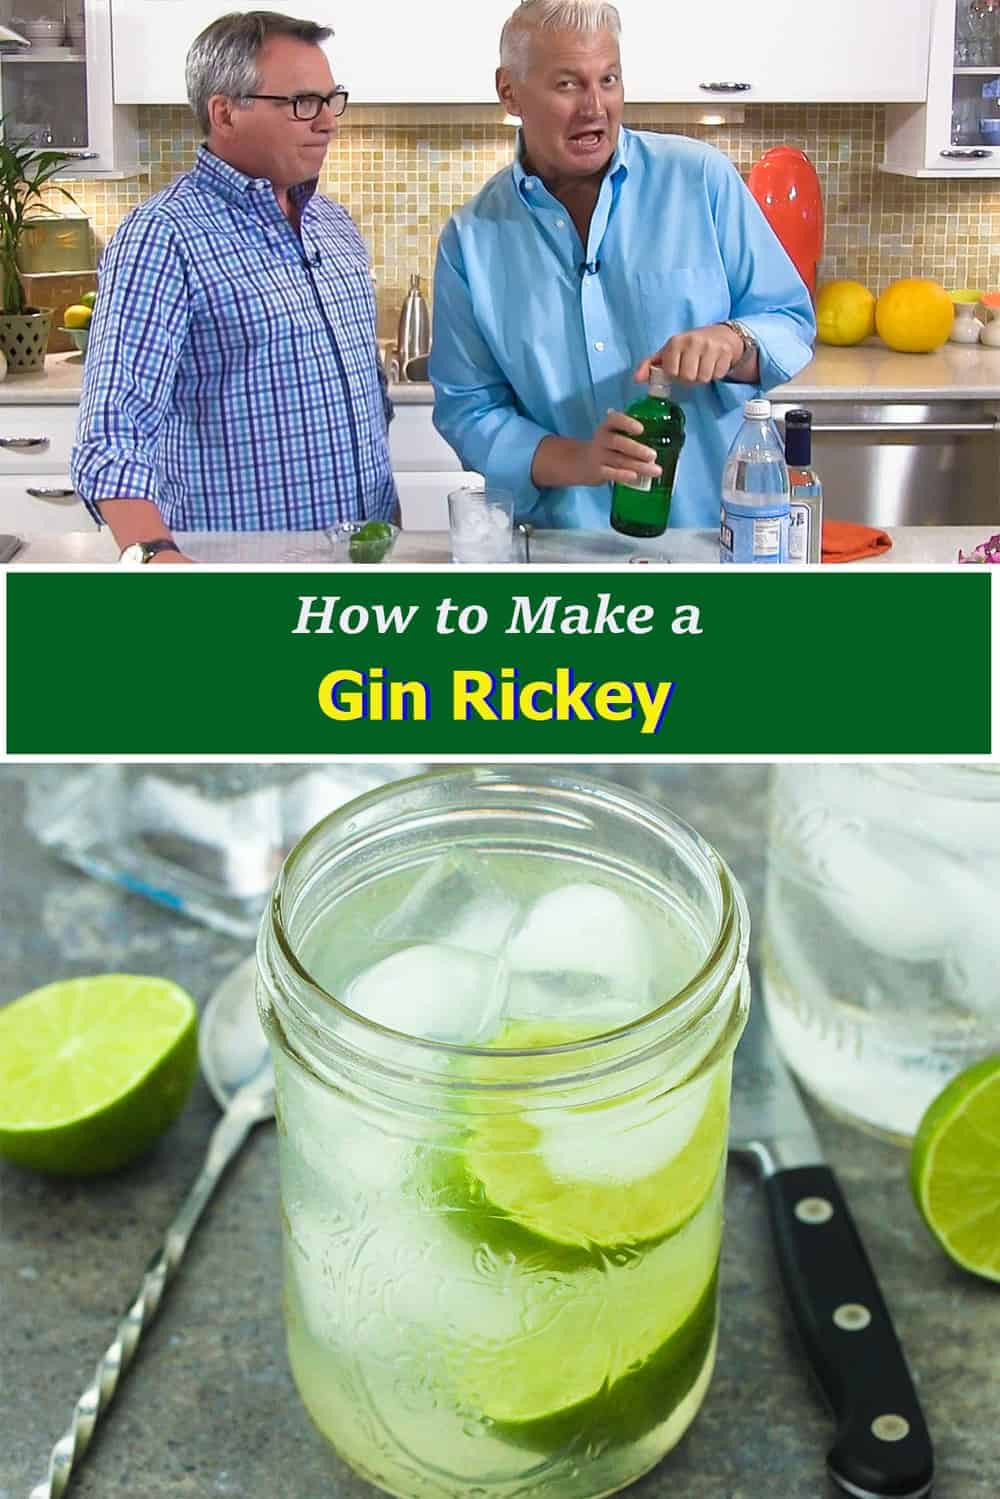 How to Make a Gin Rickey